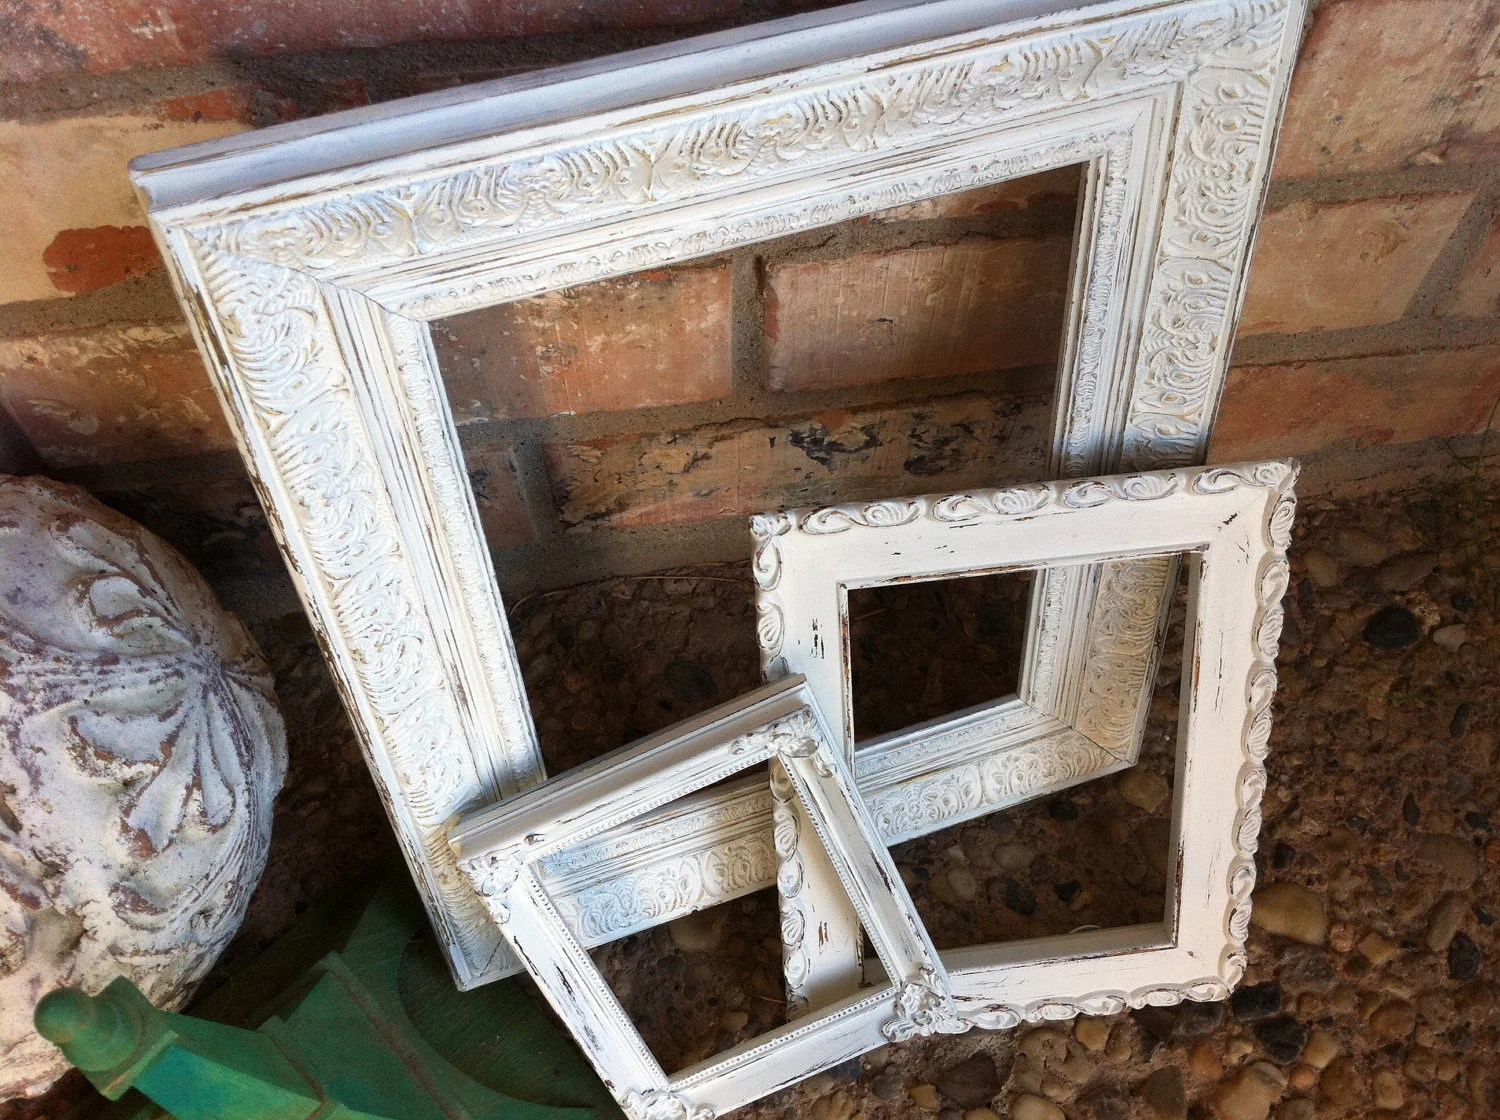 Wedding Decor, Empty Wall of Frames, Mother Goose, Chippy Frames, White Shabby Chic, Distressed Vintage Frames, Home Decor - FeFiFoFun